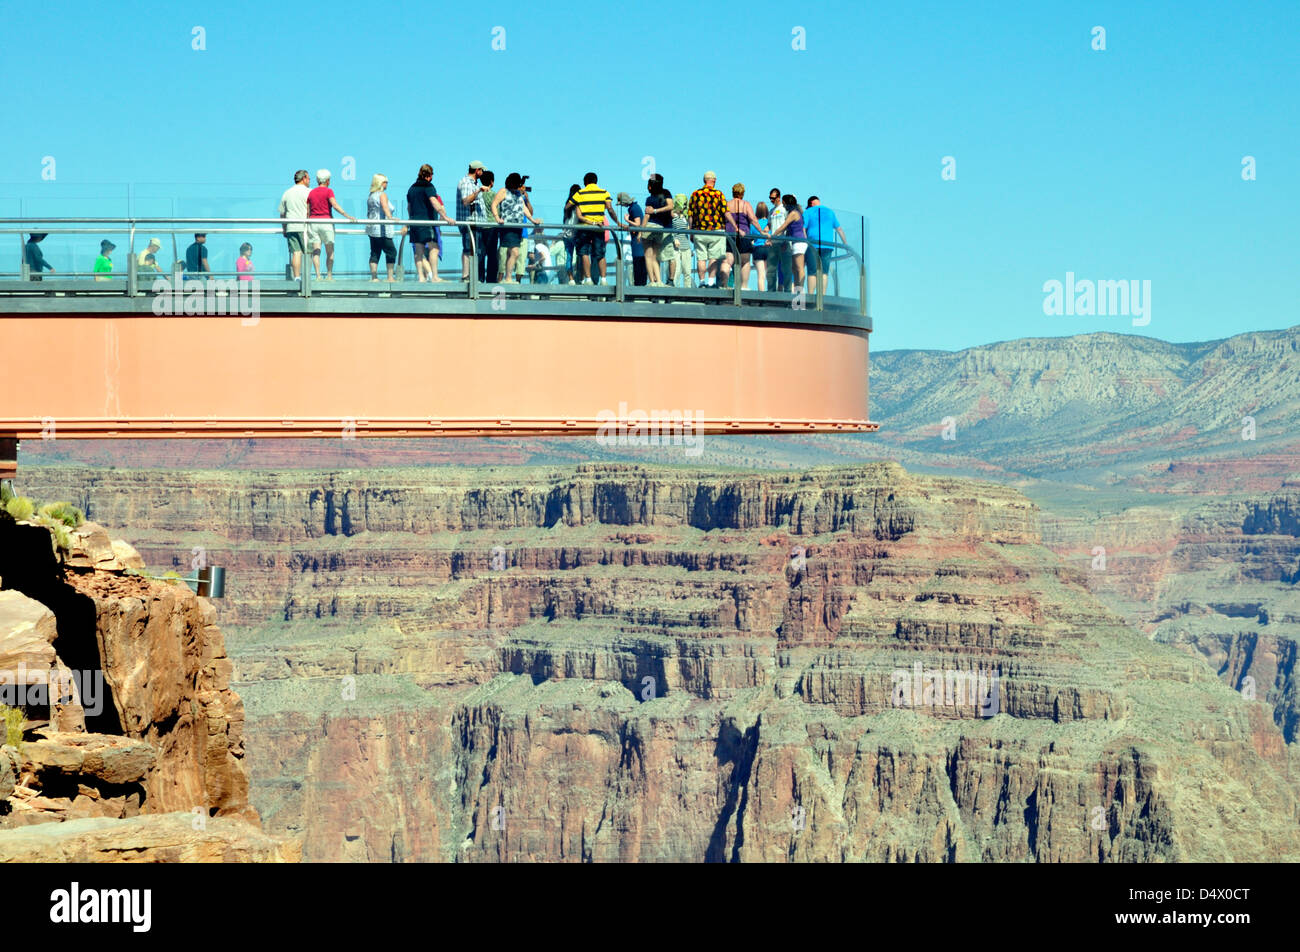 Skywalk Platform Grand Canyon Stock Photos Skywalk